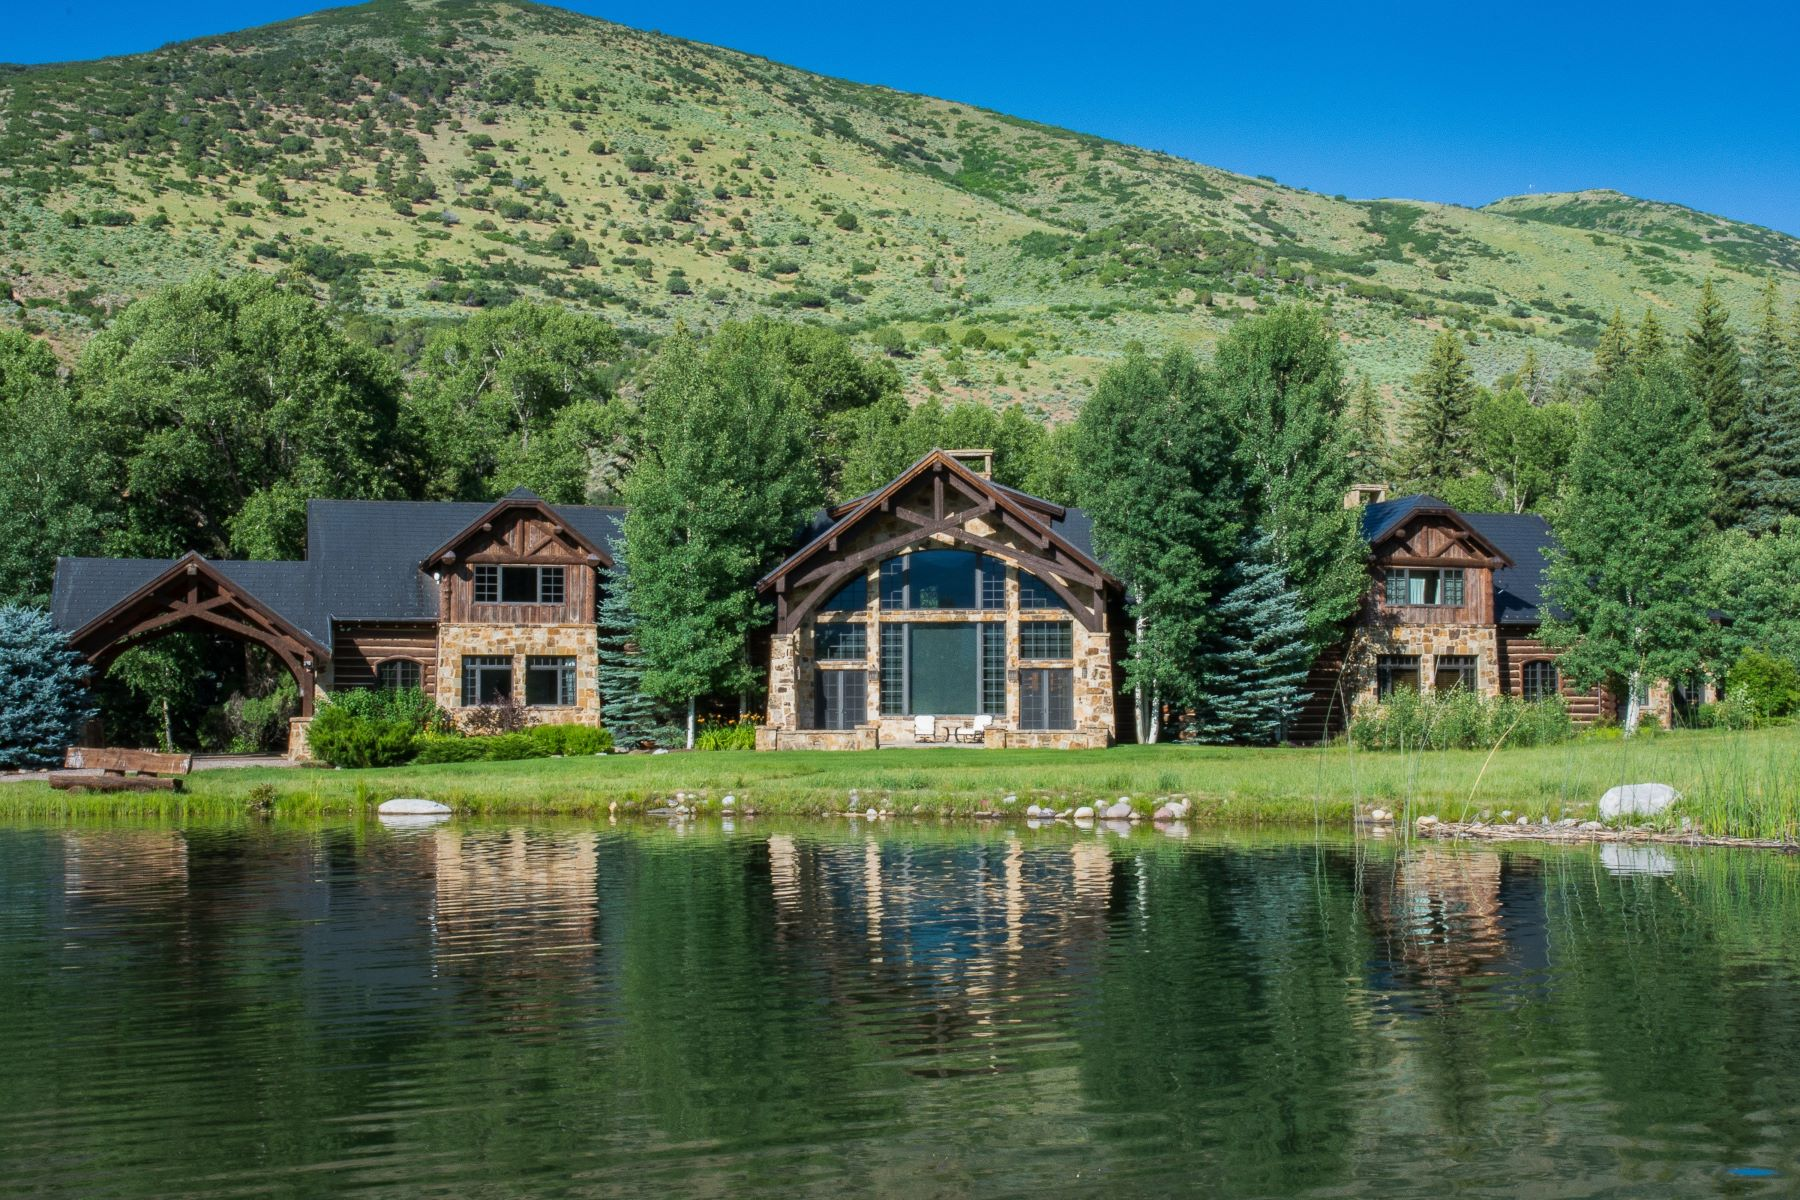 Single Family Home for Sale at Spectacular Ranch on Snowmass Creek 2280/2288 Snowmass Creek Road Snowmass, Colorado, 81654 United StatesIn/Around: Aspen